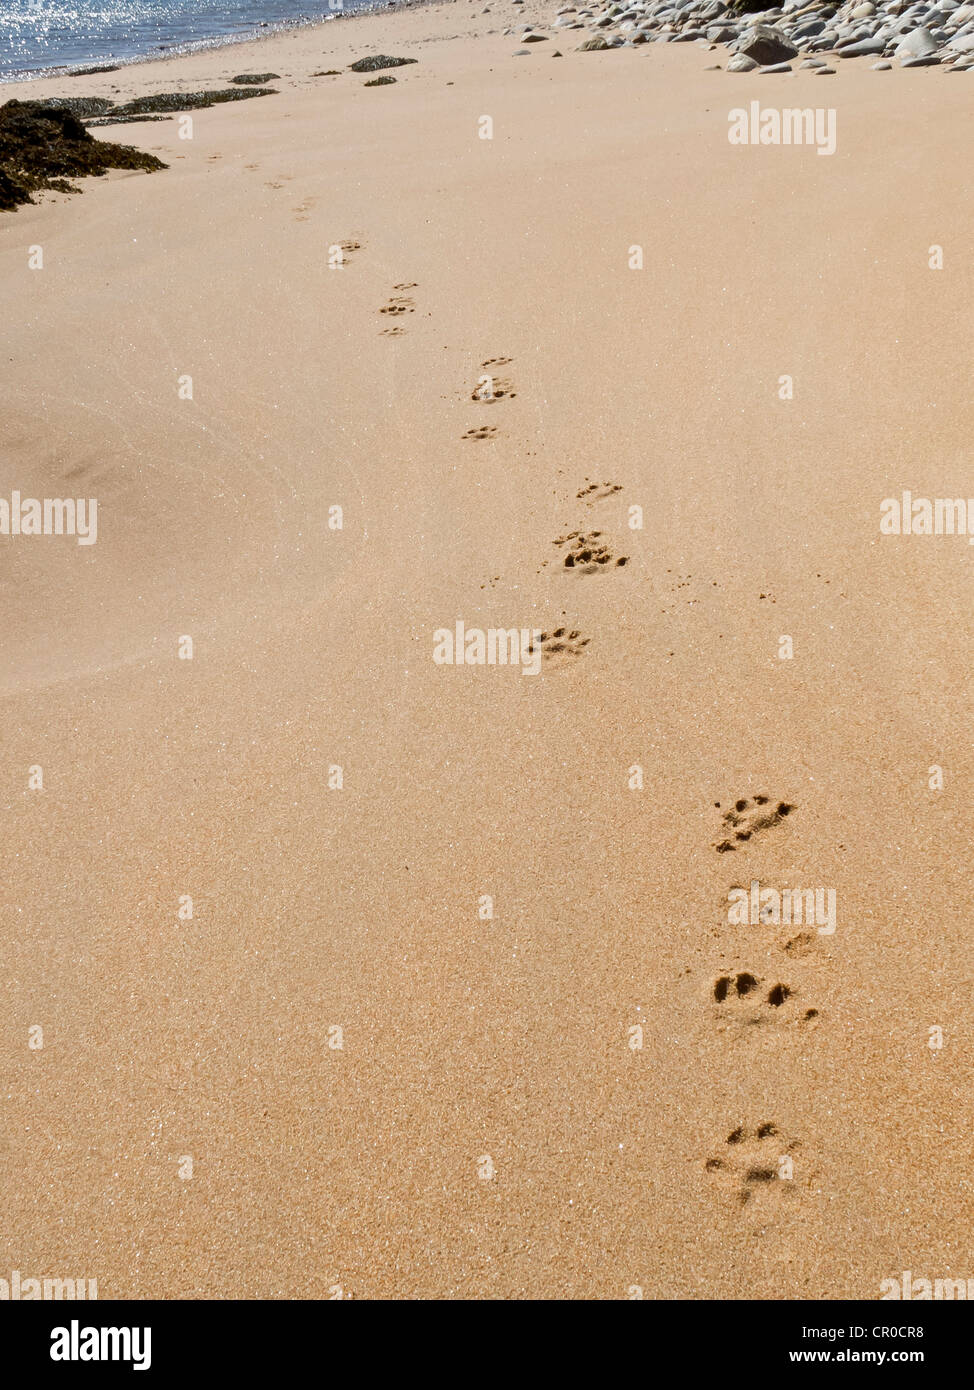 Tracks of Eurasian otter (Lutra lutra) on a beach in the Shetland Islands. June 2010. - Stock Image